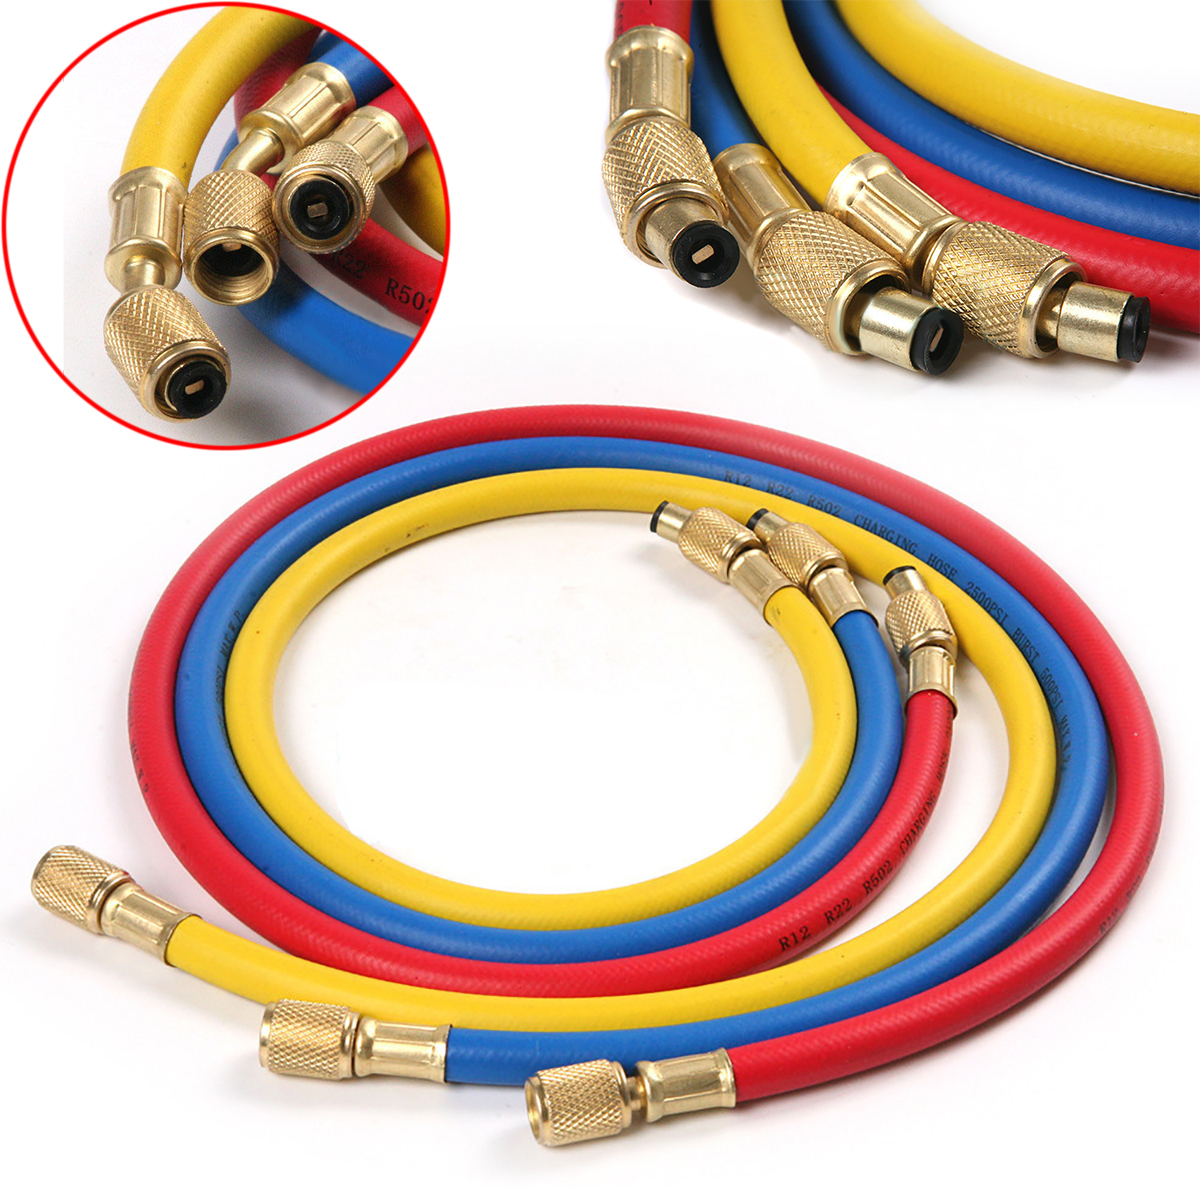 best r12 freon brands and get free shipping - 2jb17667